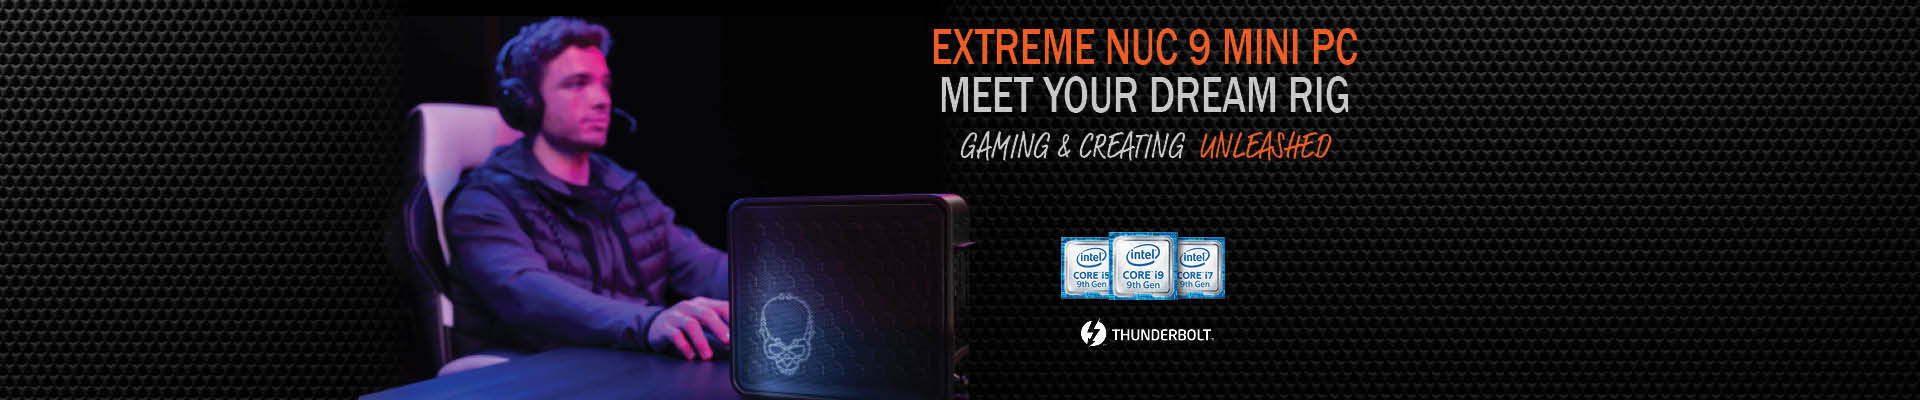 extreme nuc 9 banner 1